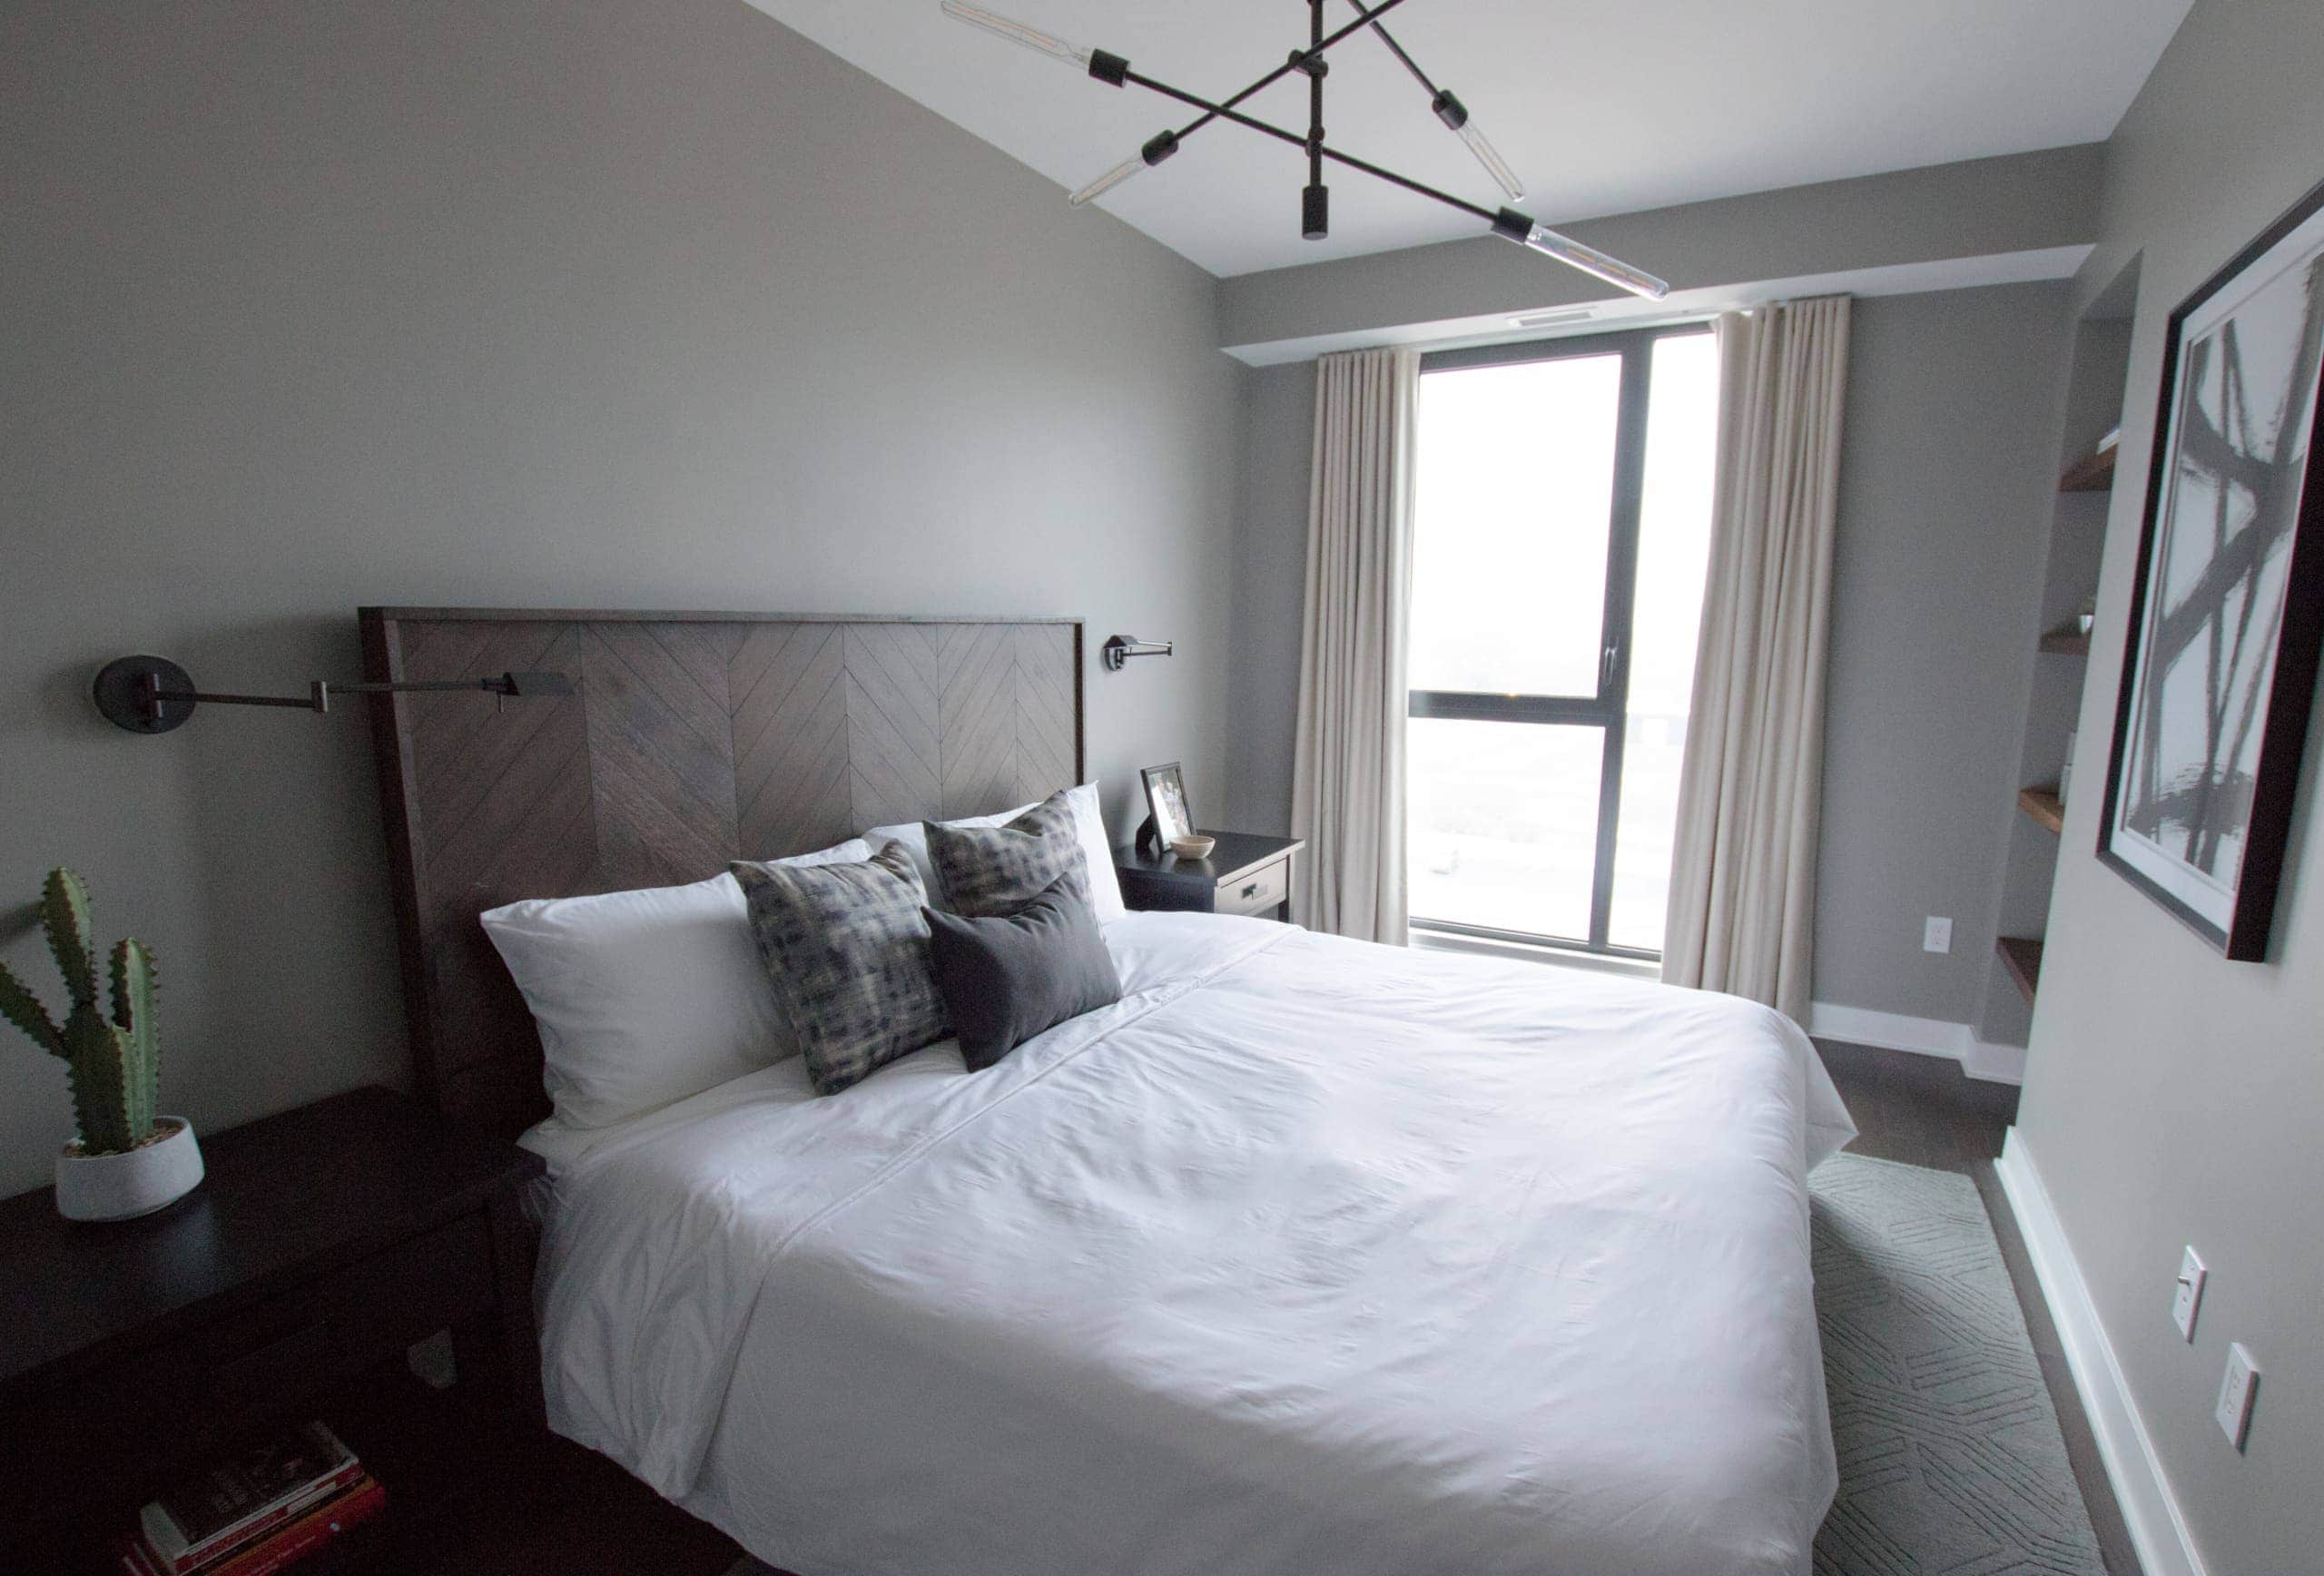 Large white bed with a wooden headboard